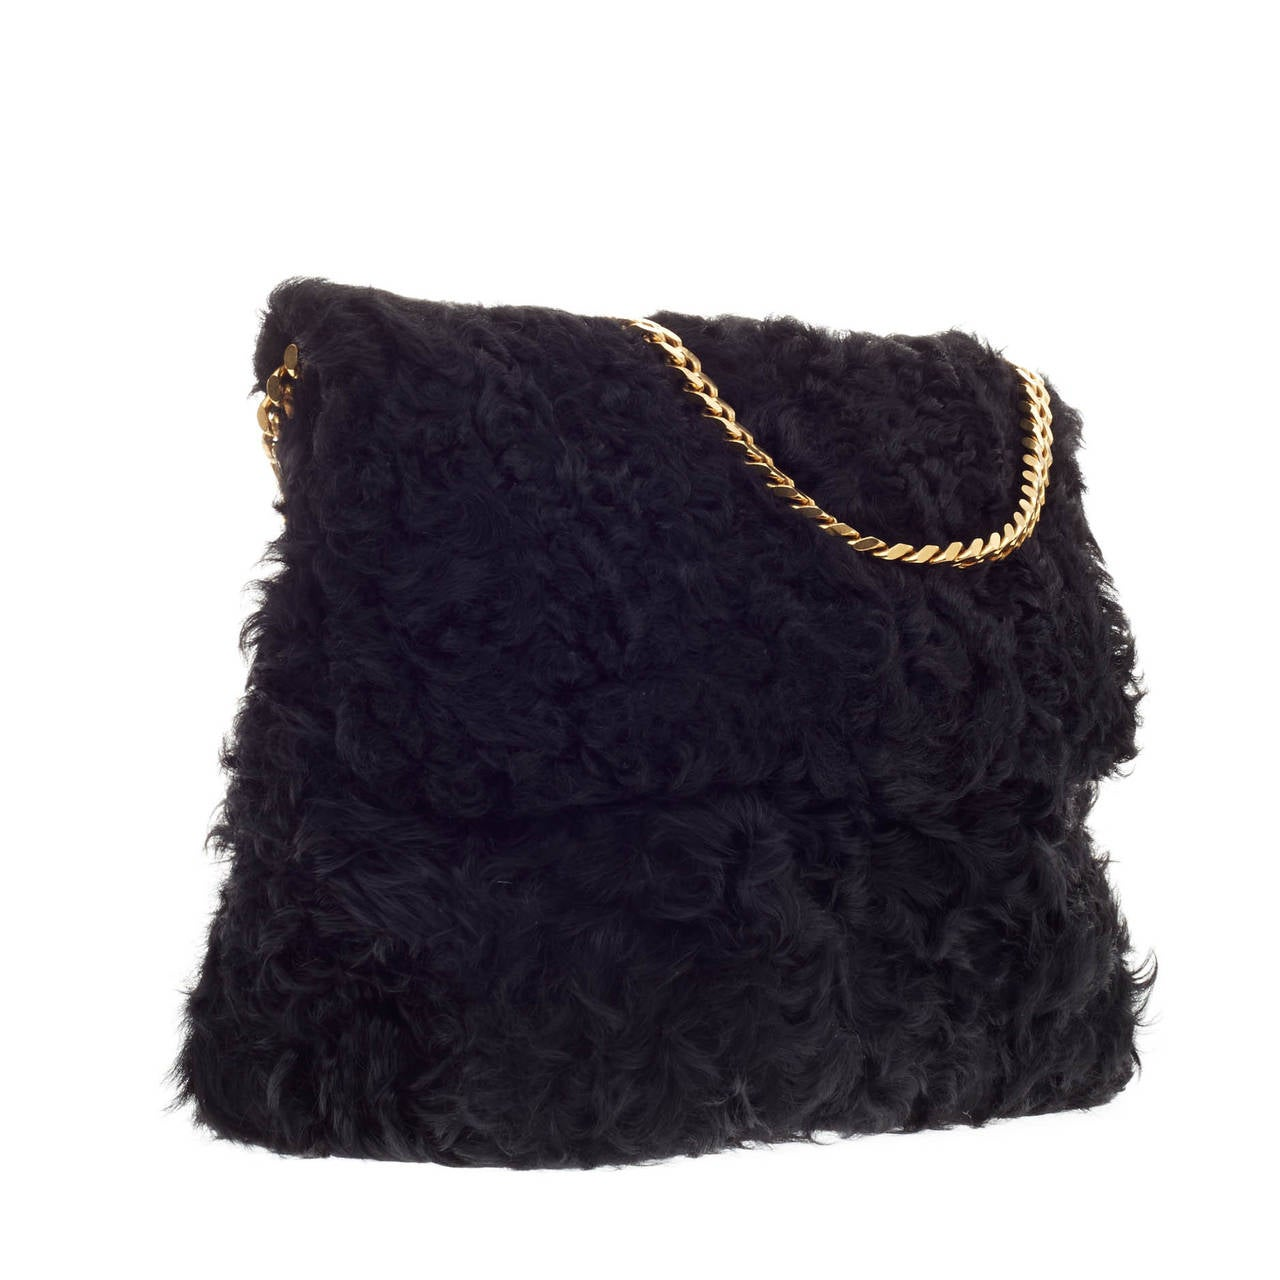 celine luggage tote mini - celine black fur handbag gourmette